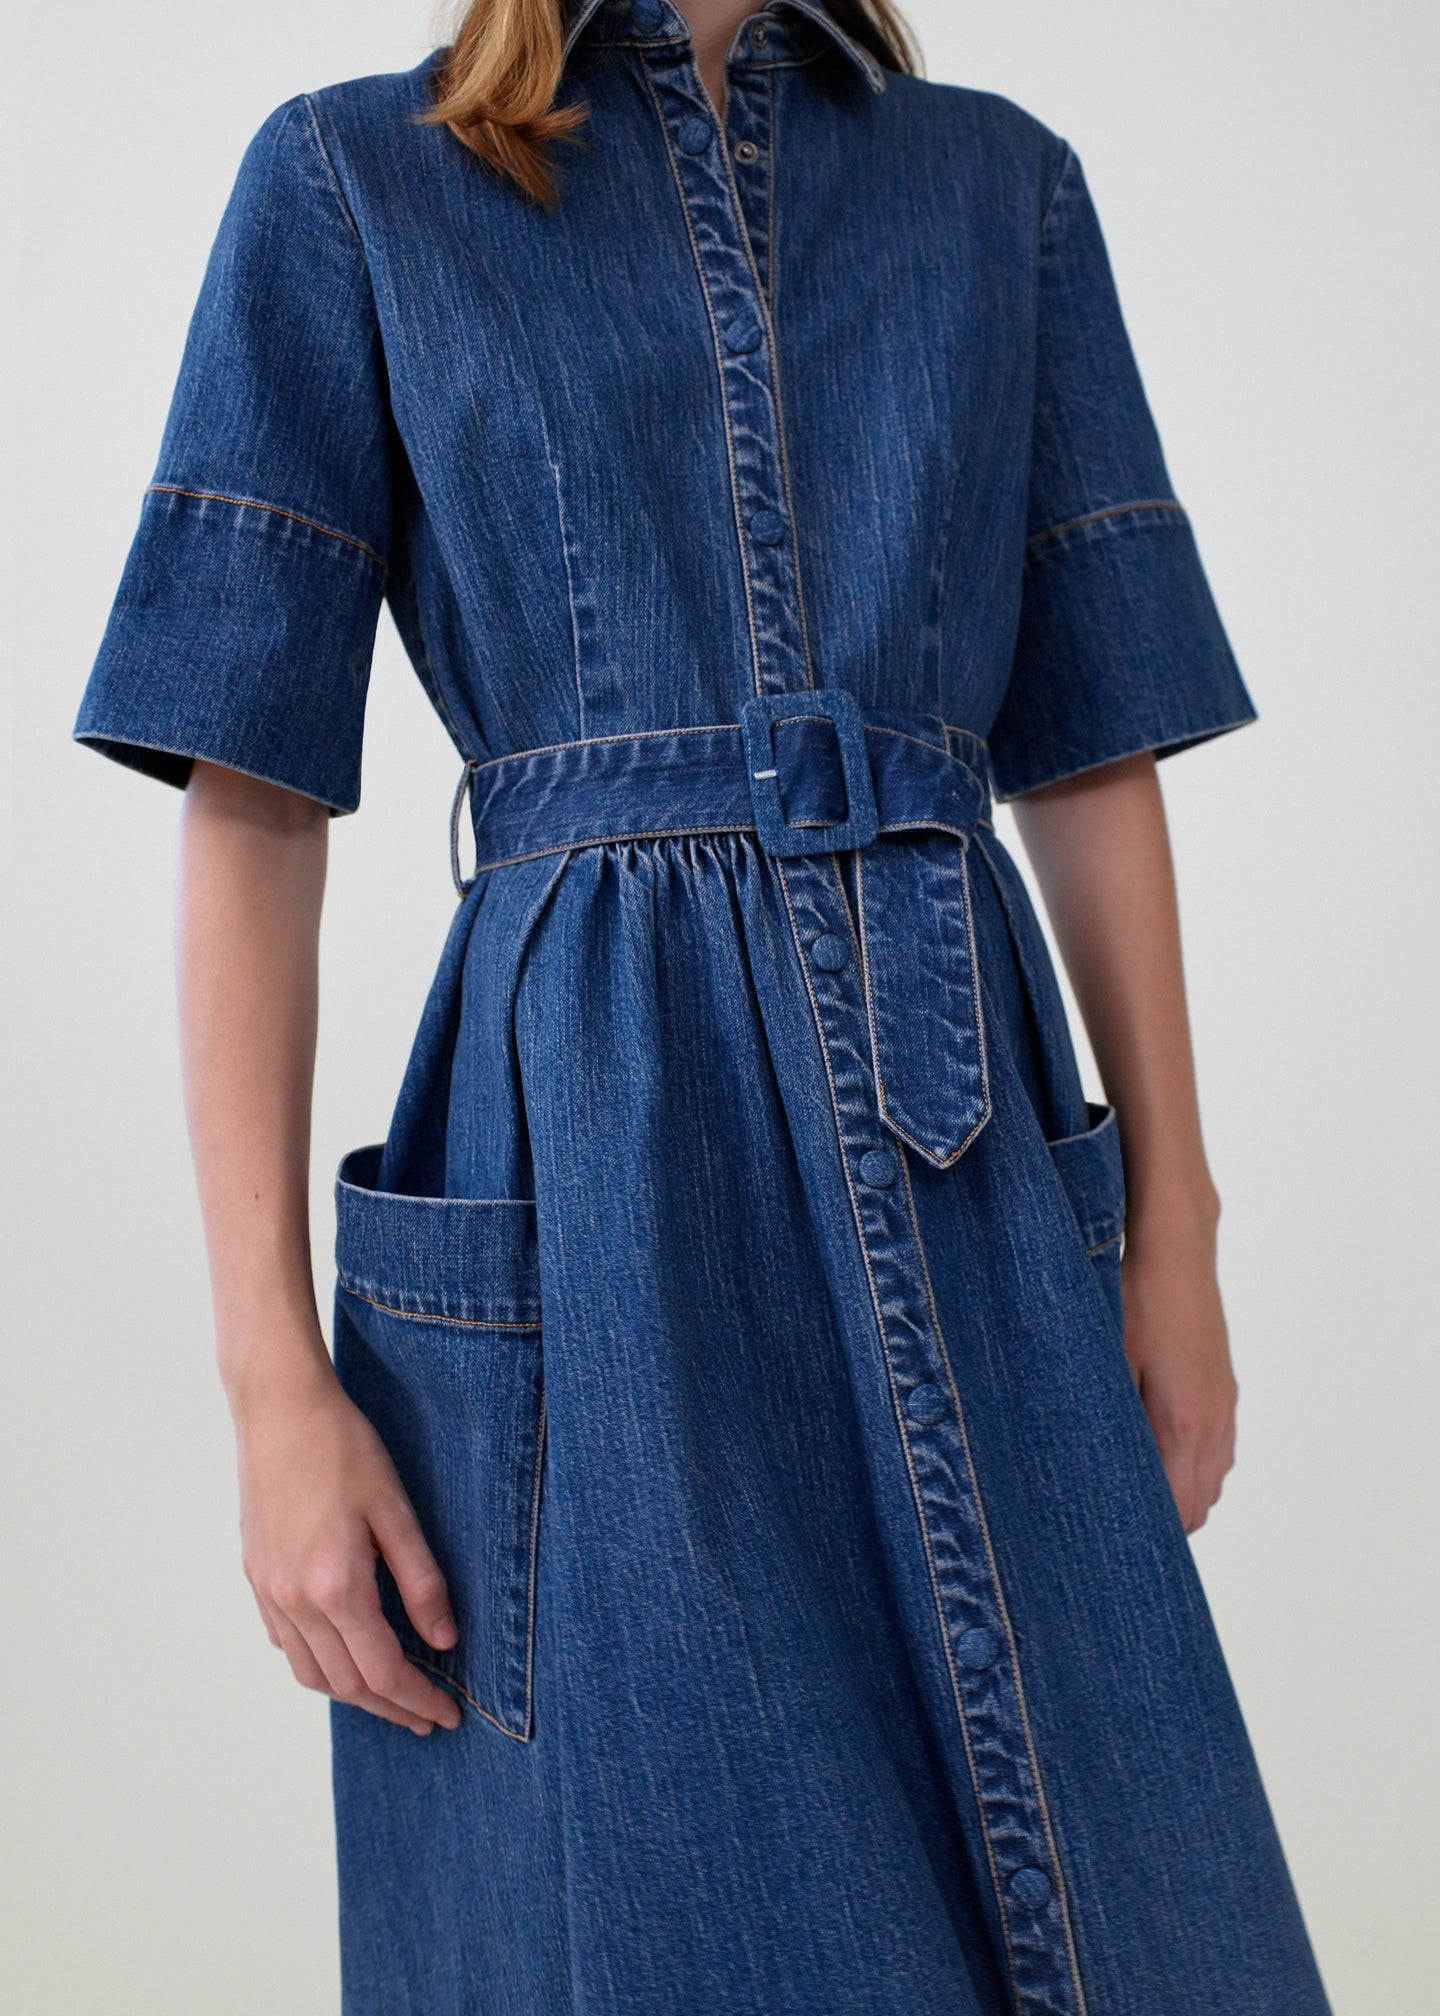 CO - Patch Pocket Dress in Denim - Denim